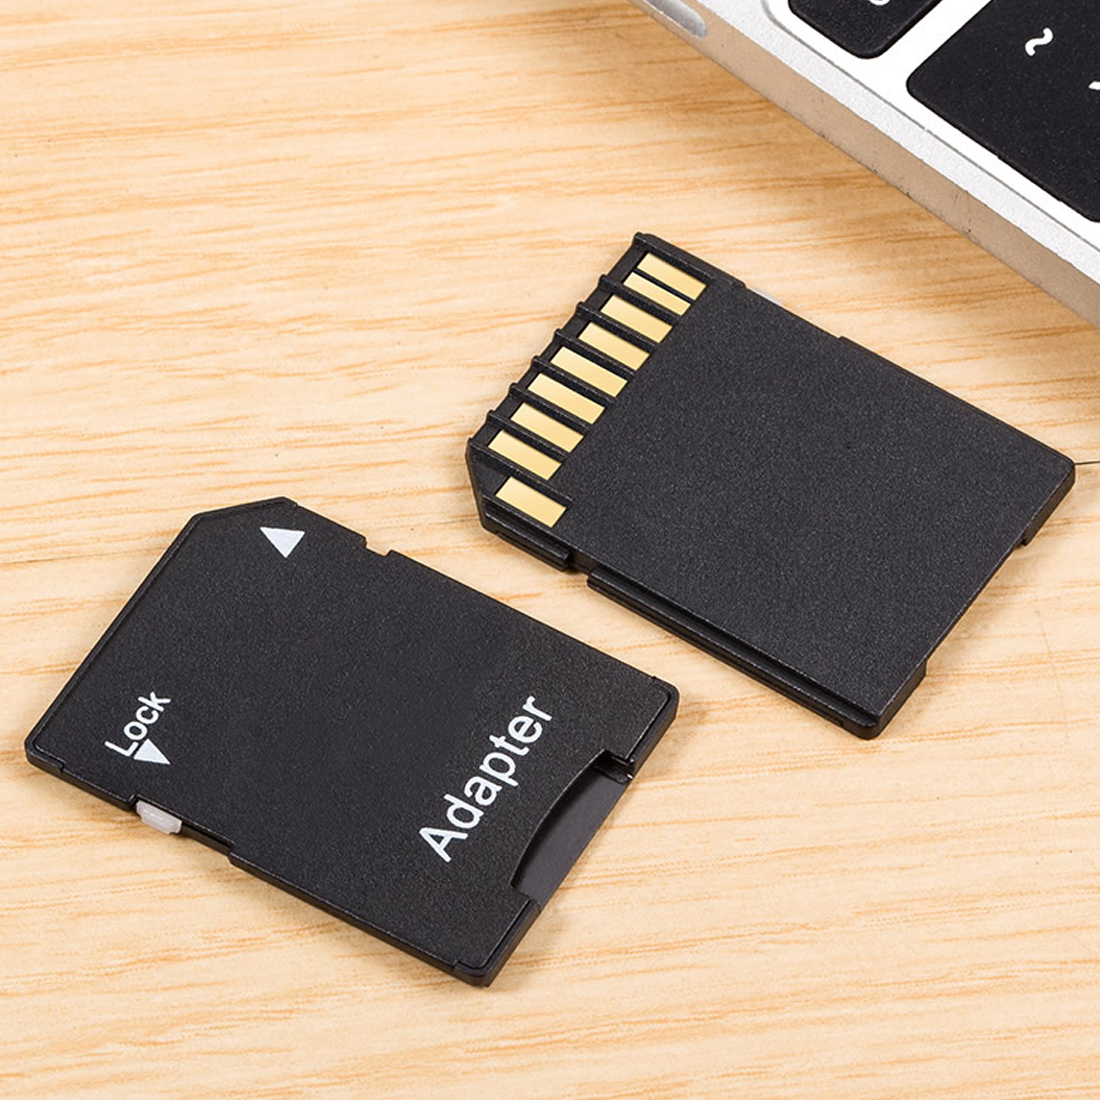 Image 3 - Etmakit  2PCS Hot Sale Popular Micro SD TransFlash TF to SD SDHC Memory Card Adapter Convert into SD Card-in Card Readers from Computer & Office